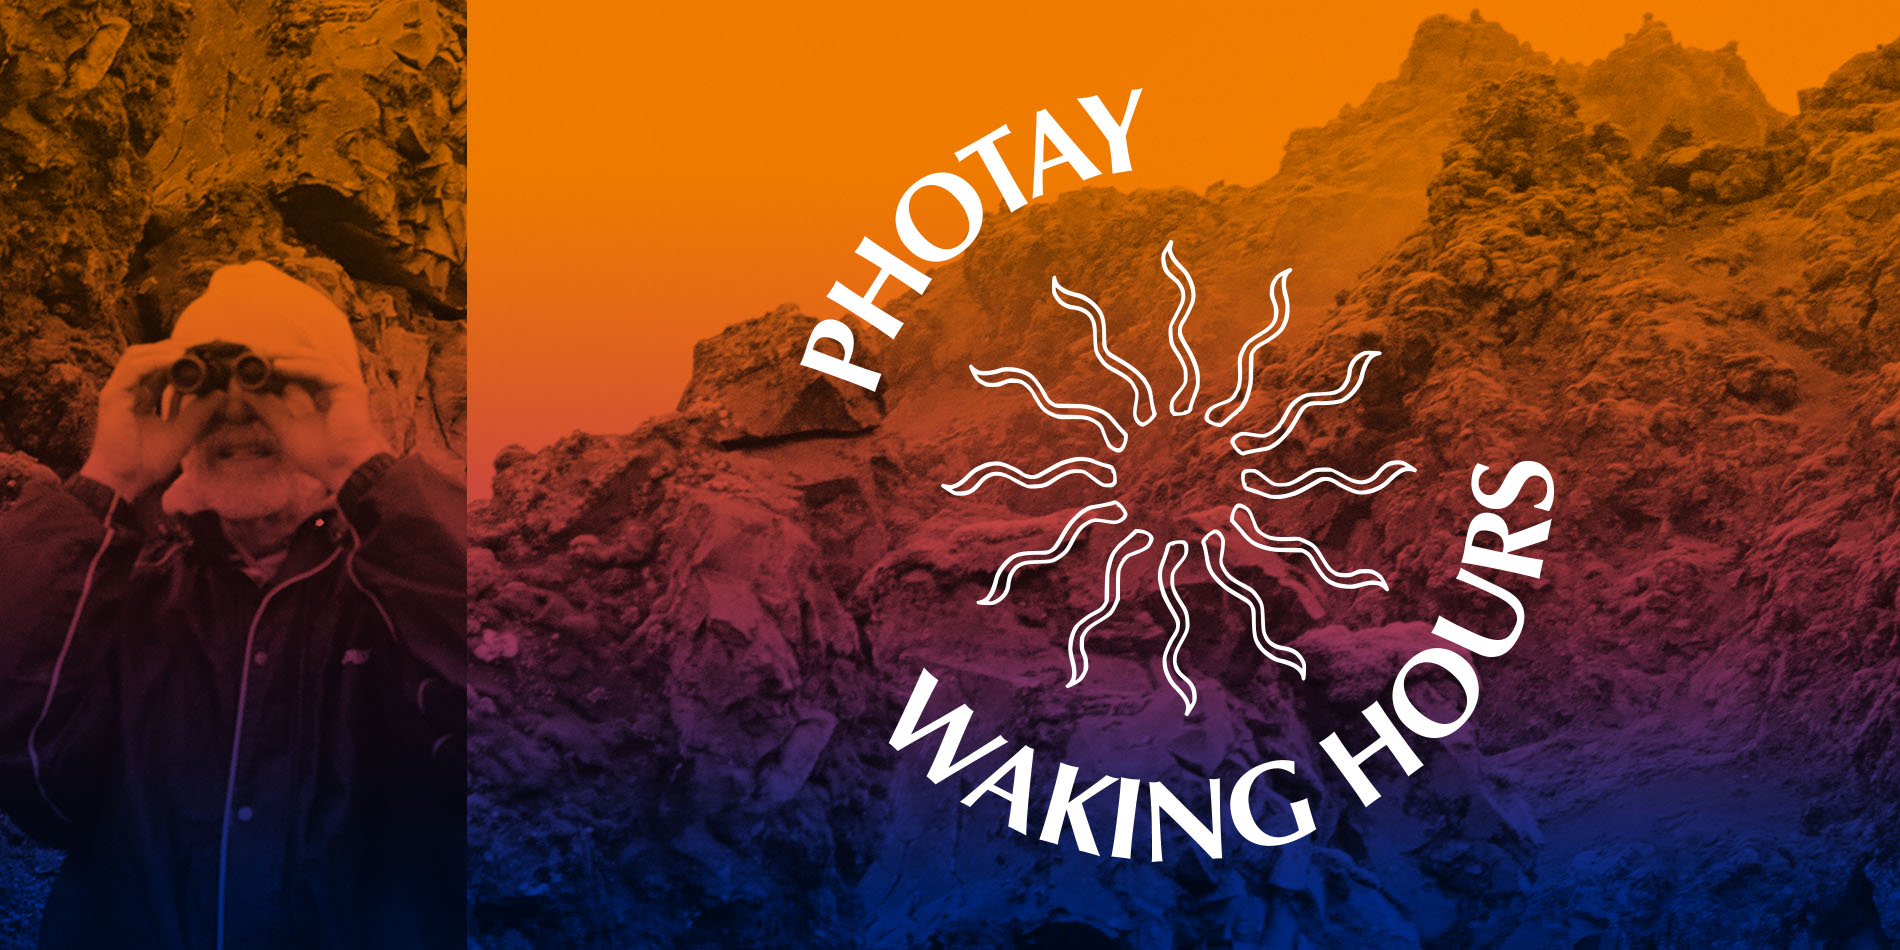 photay waking hours announce banner